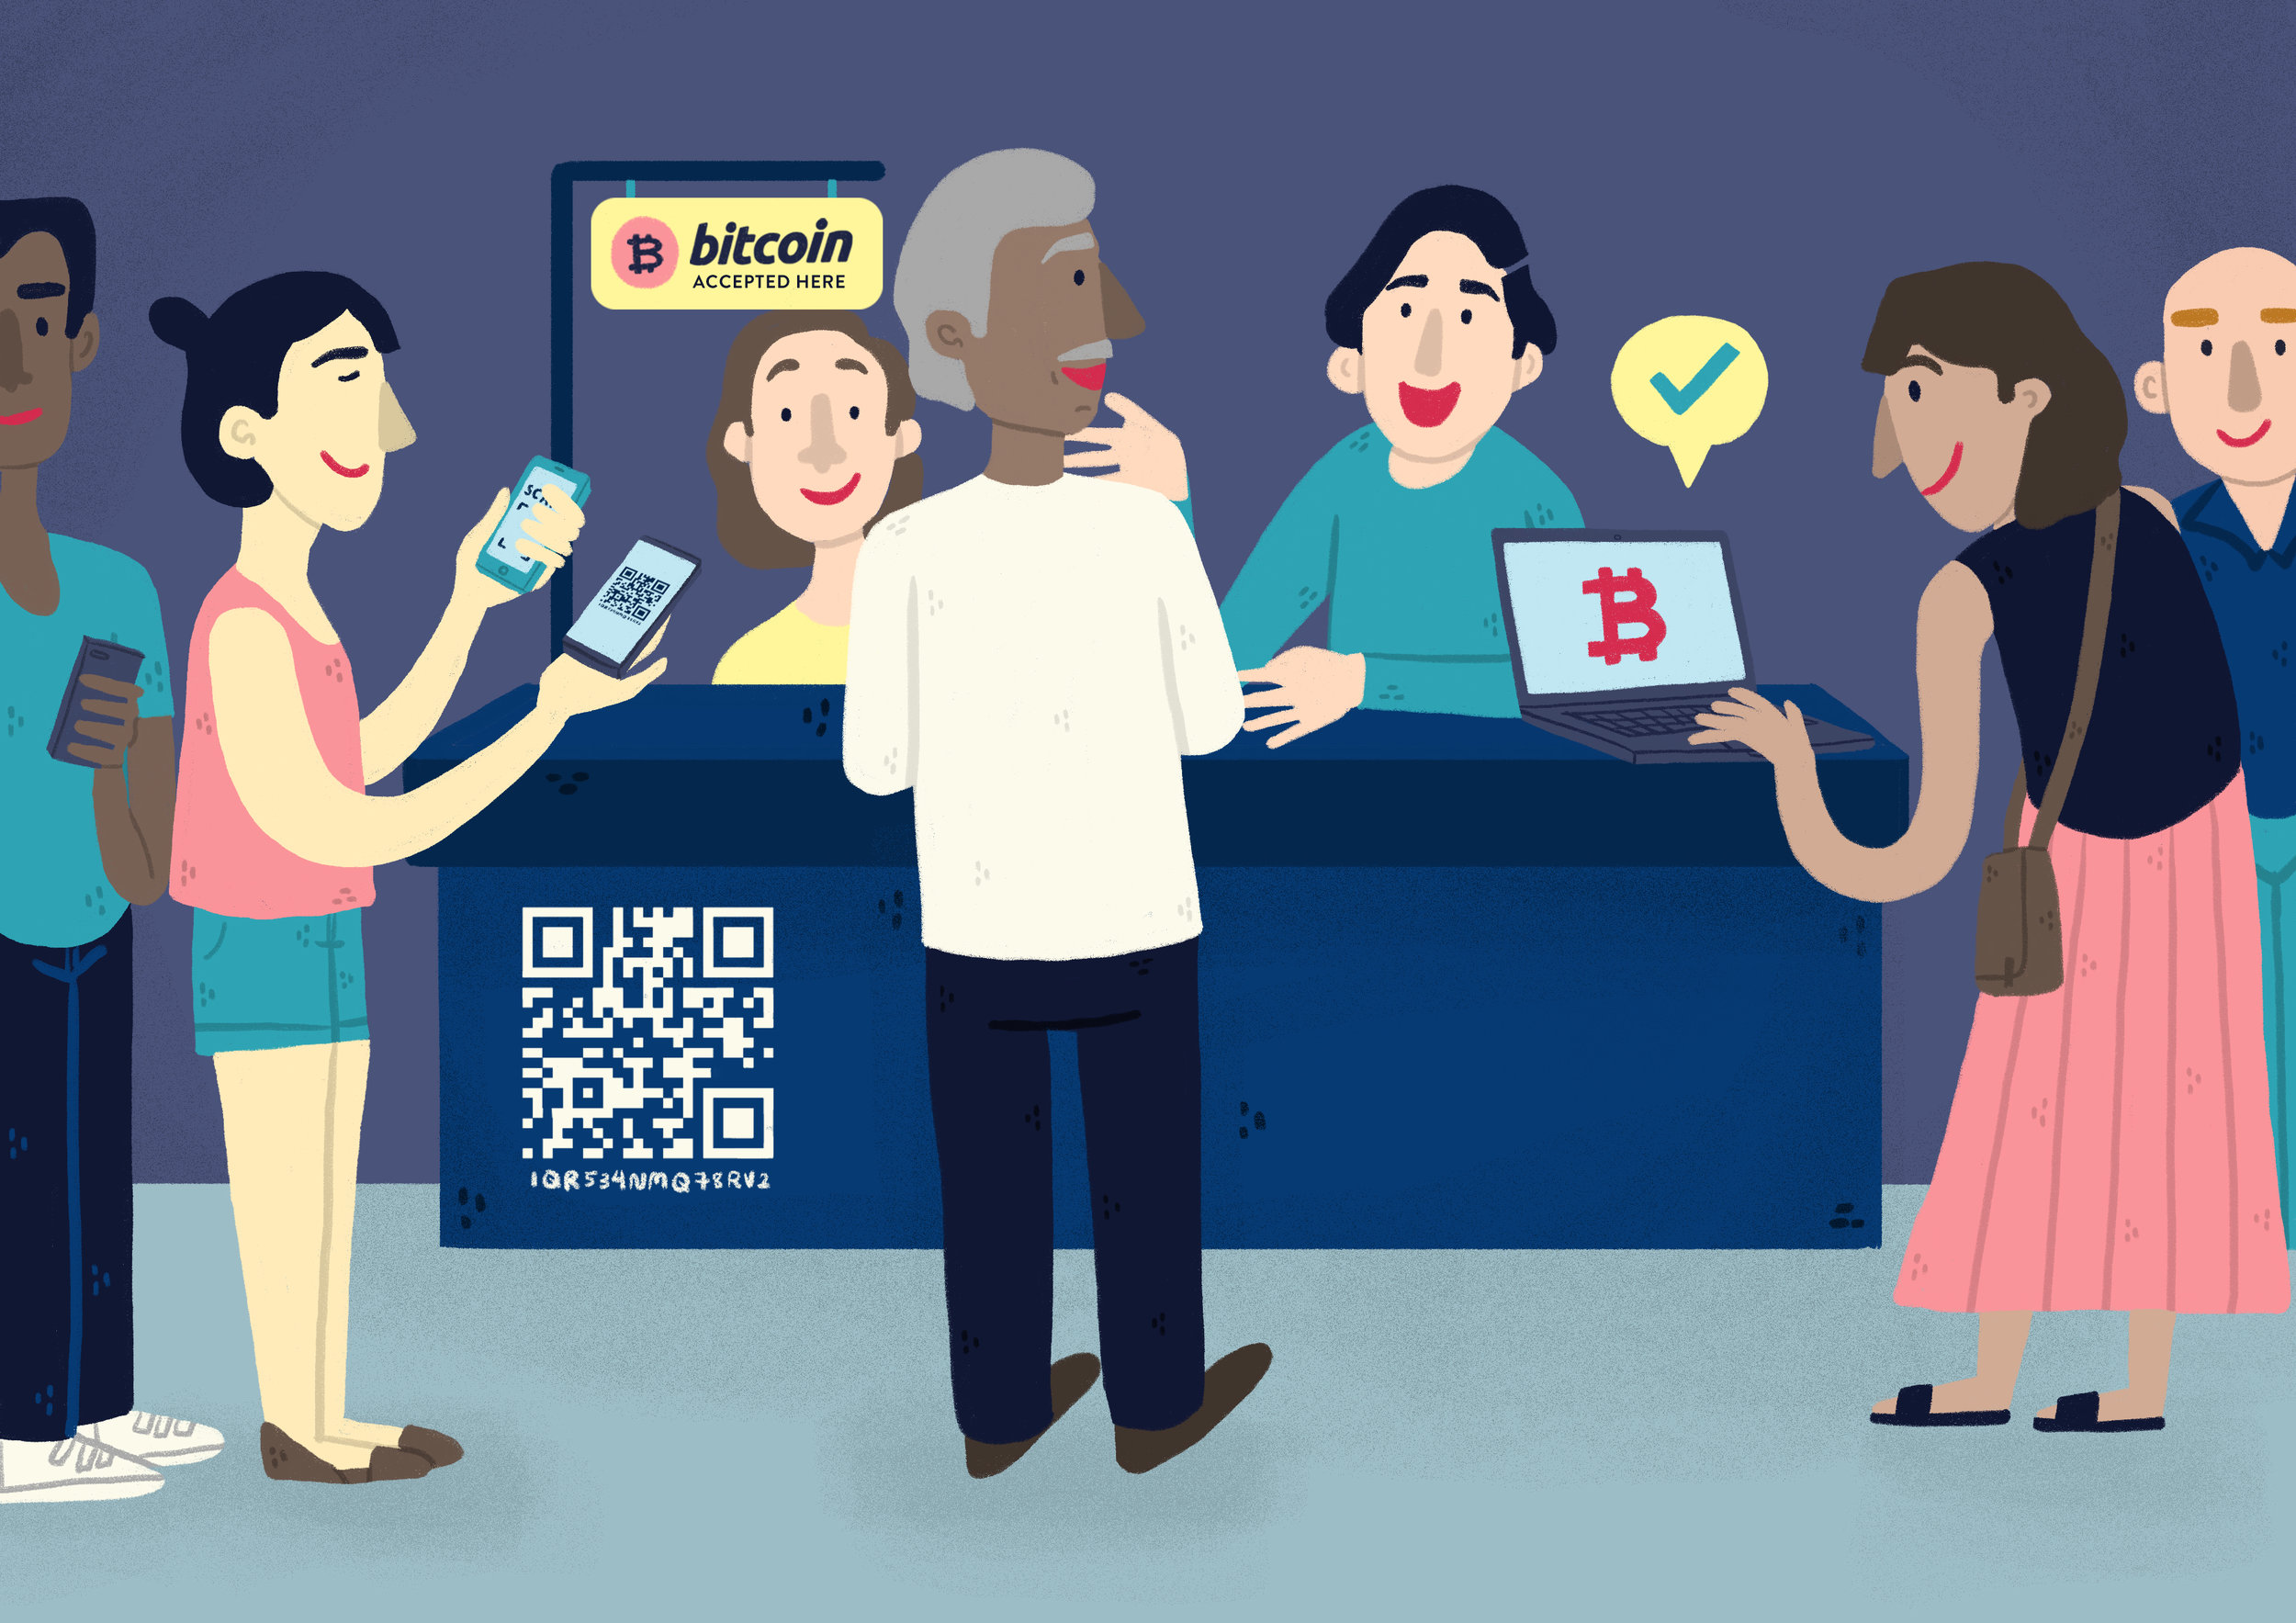 How can my business accept Bitcoin?